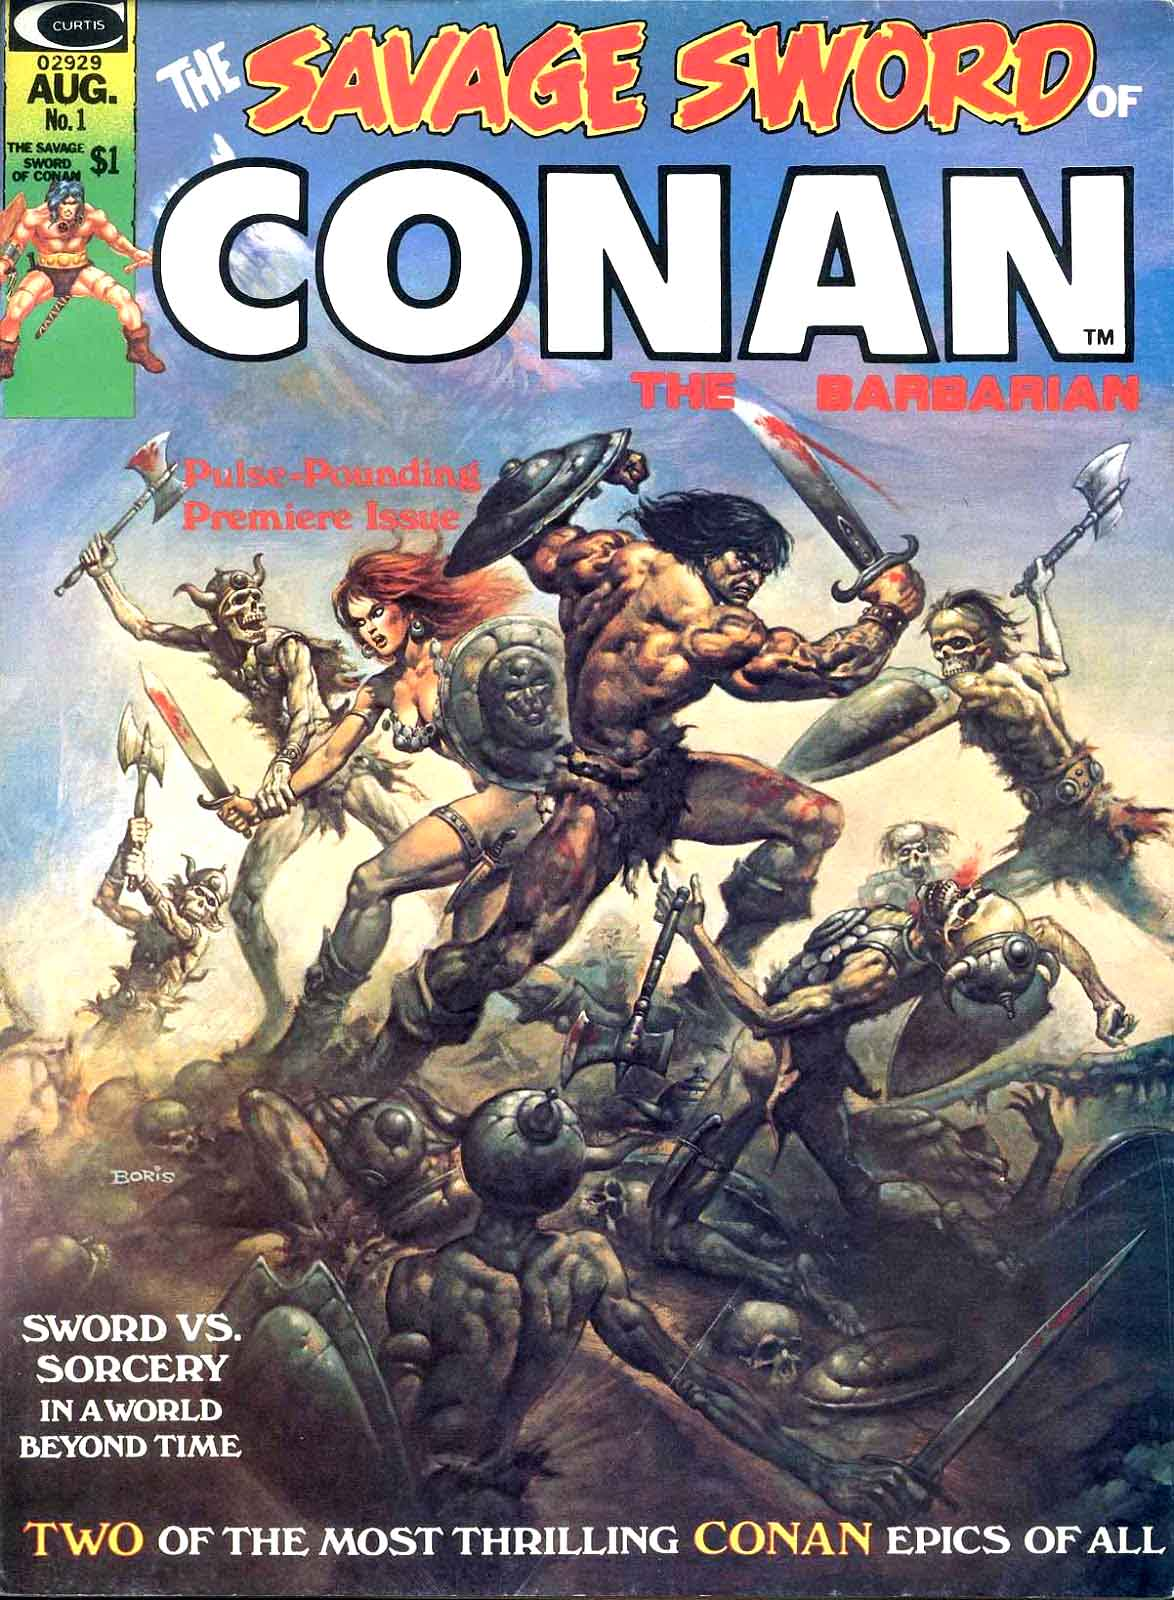 The Savage Sword of Conan by Boris Valejo 1975